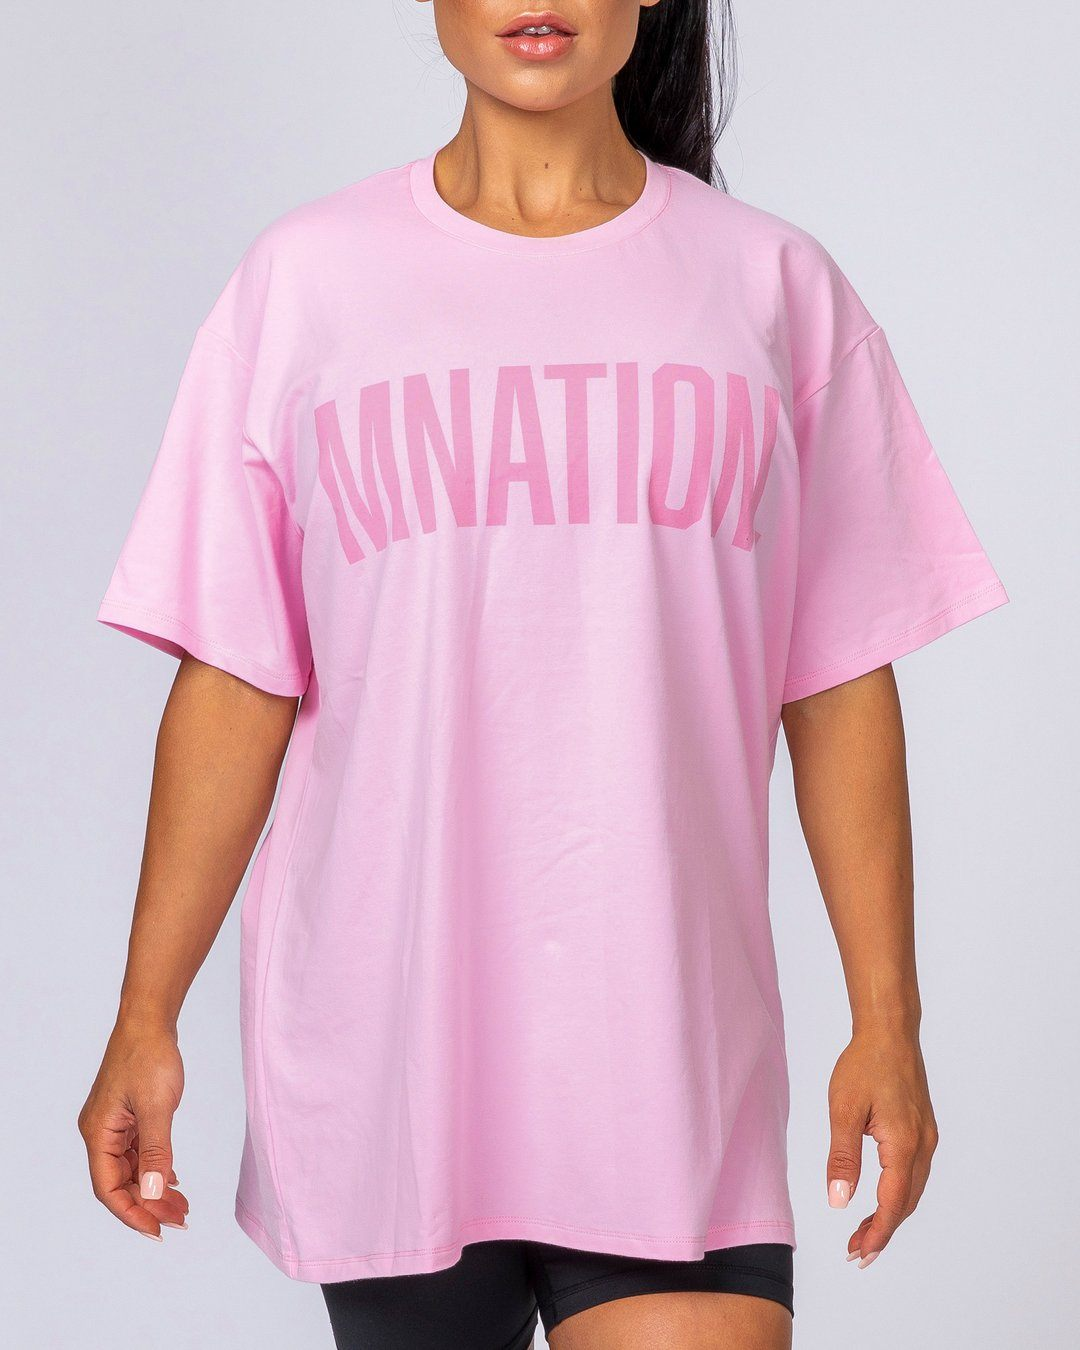 Muscle Nation Oversized Tonal Tee - Pink